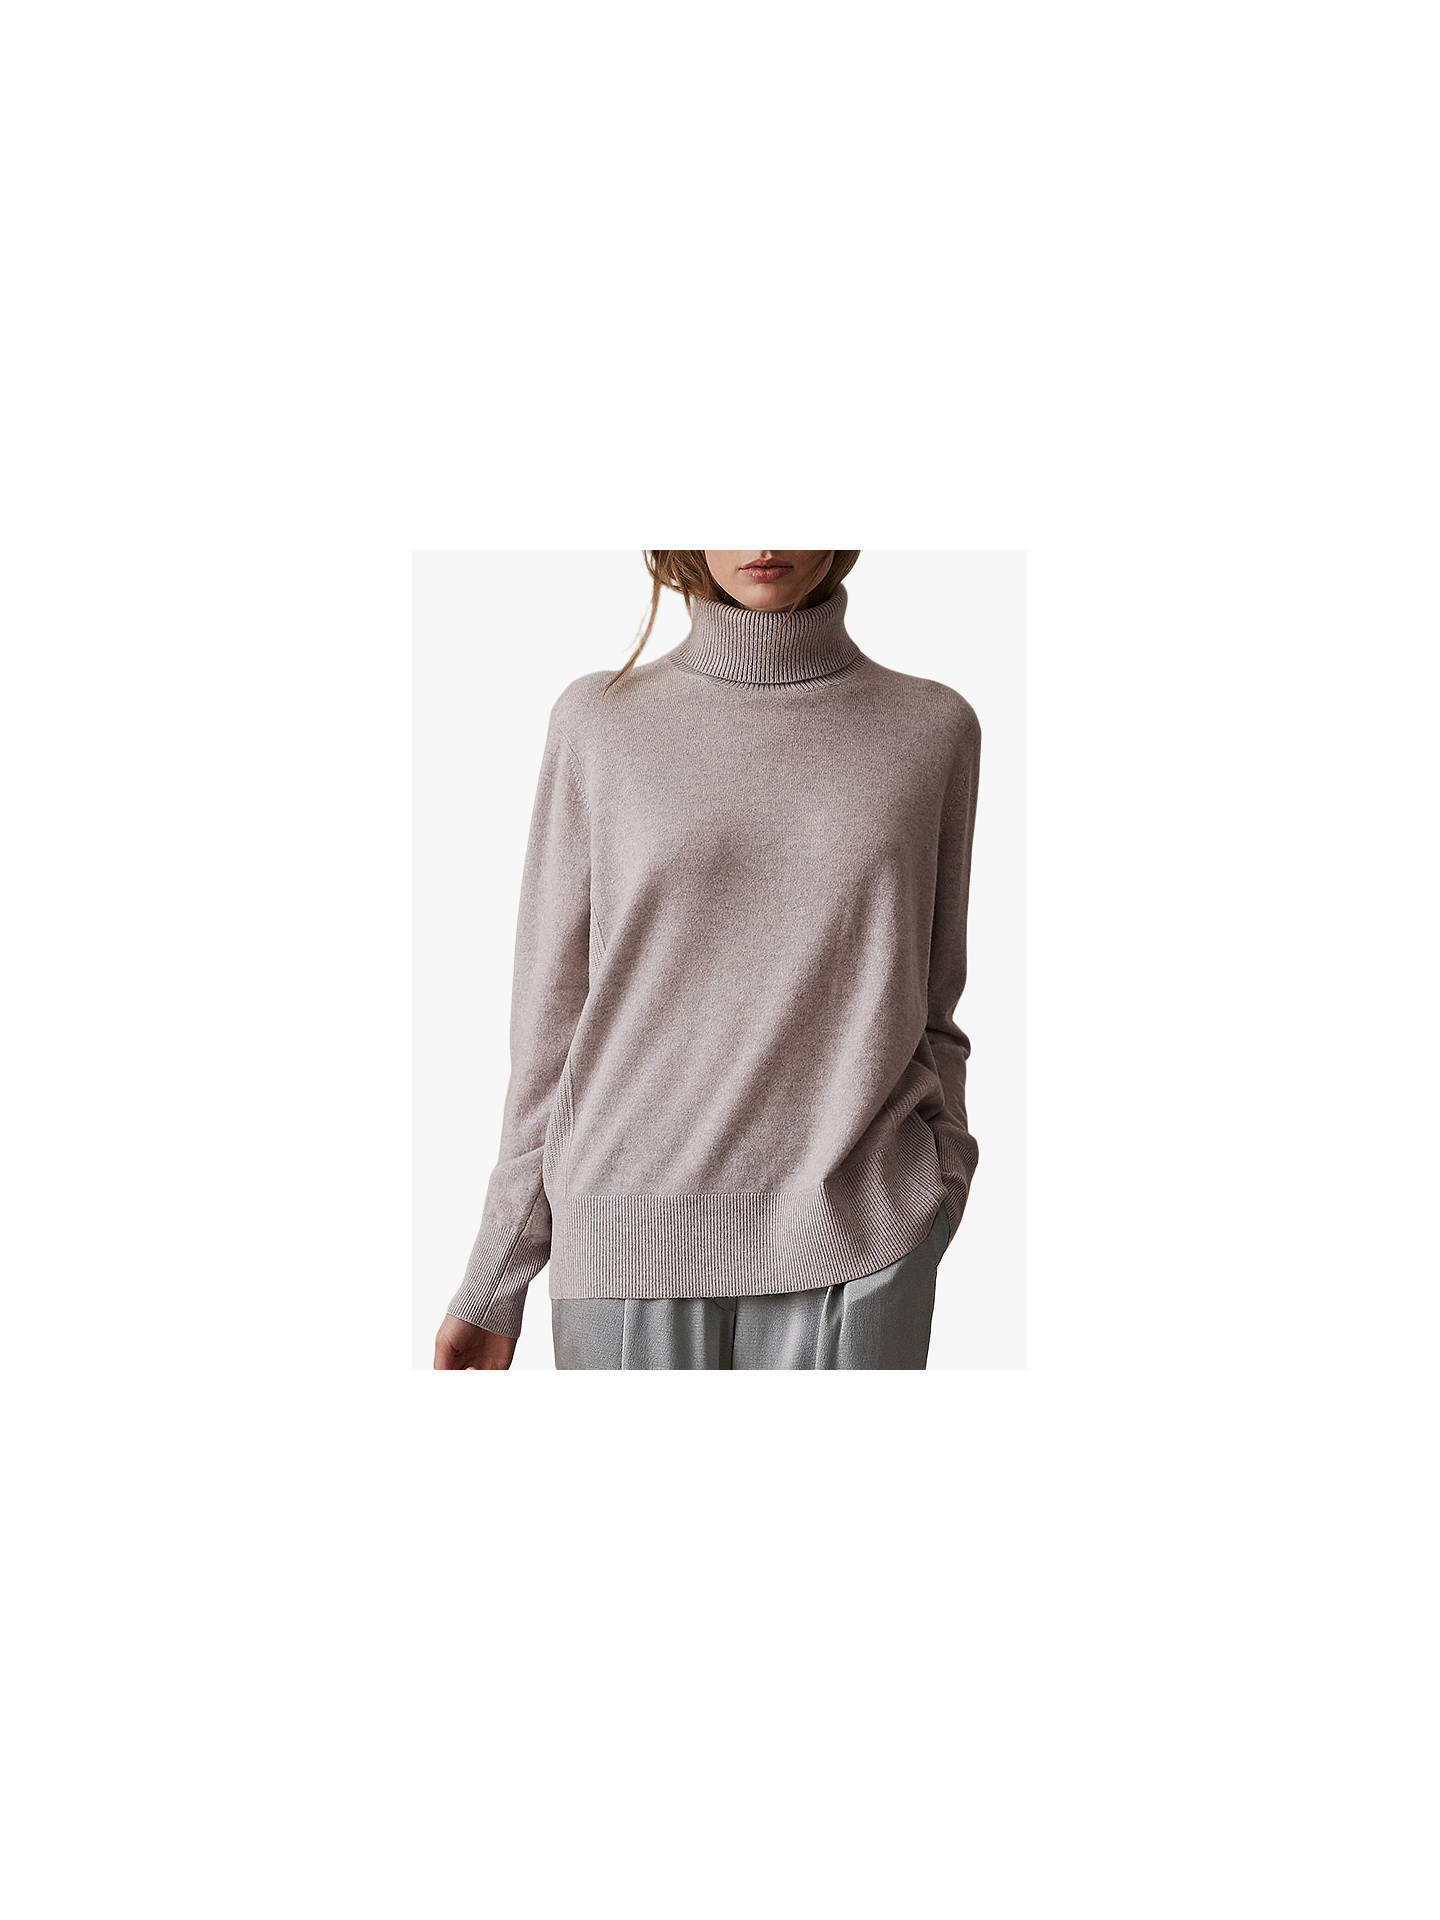 615c7a277 Buy Reiss Clarissa Cashmere Roll Neck Jumper